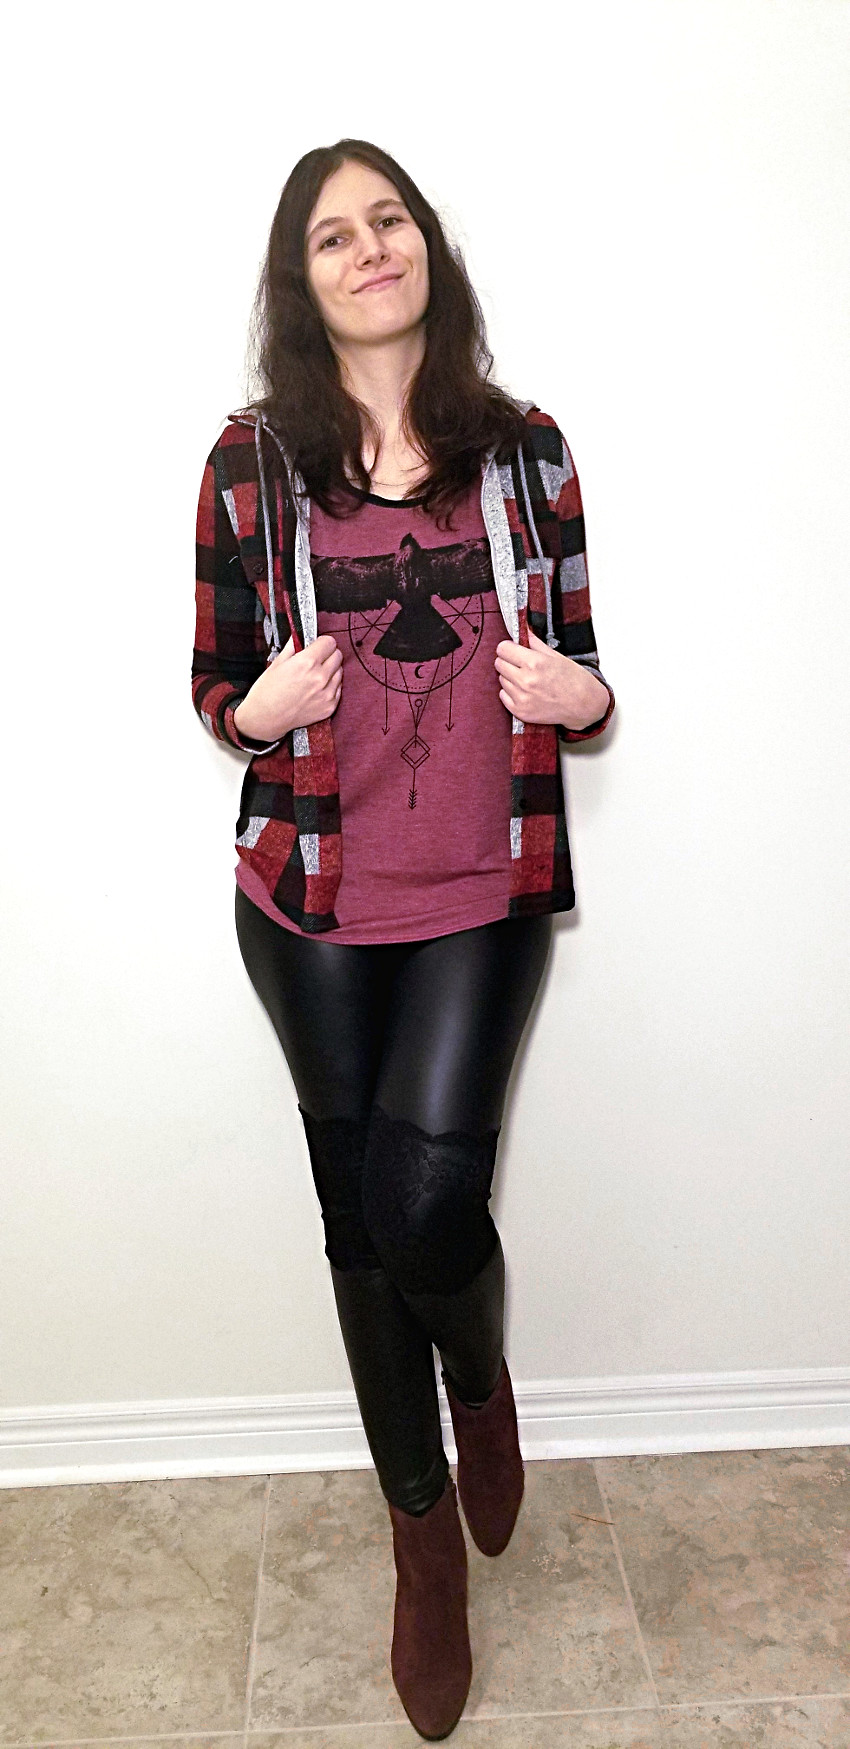 Polar Bear Style Hooded Plaid Shirt Black Leather Leggings Burgundy T-Shirt Burgundy Ankle Boots